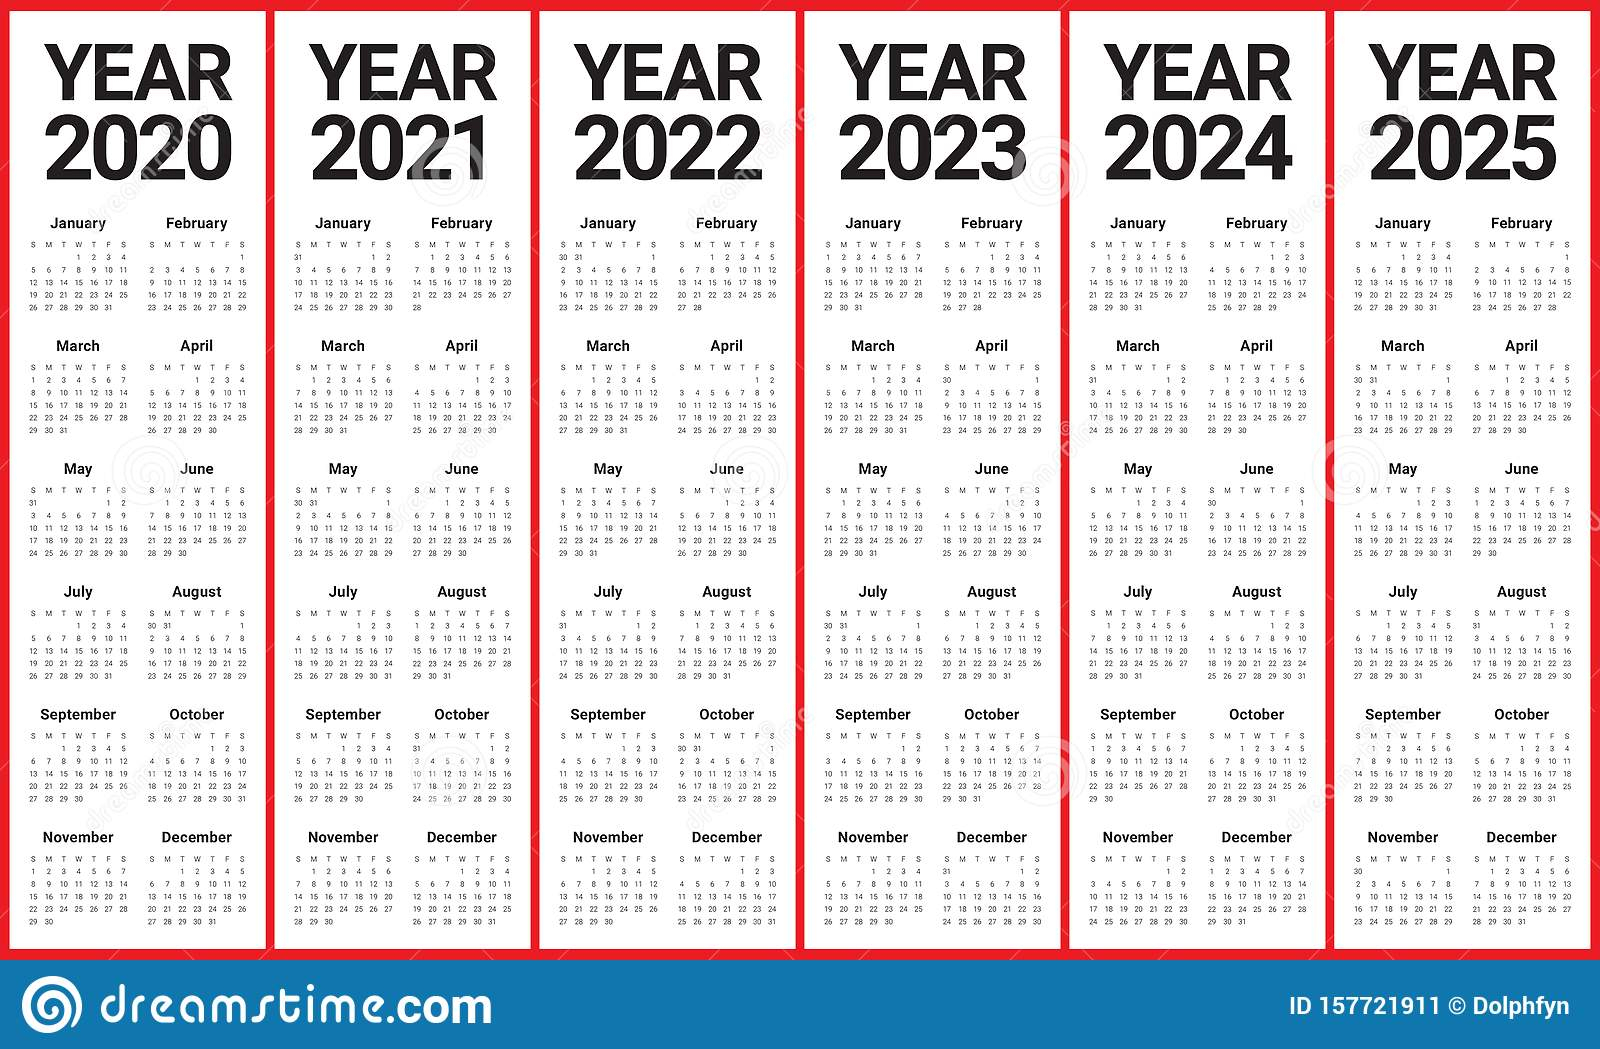 Year 2020 2021 2022 2023 2024 2025 Calendar Vector Design inside Three Year Printable Calendar 2020 To 2023